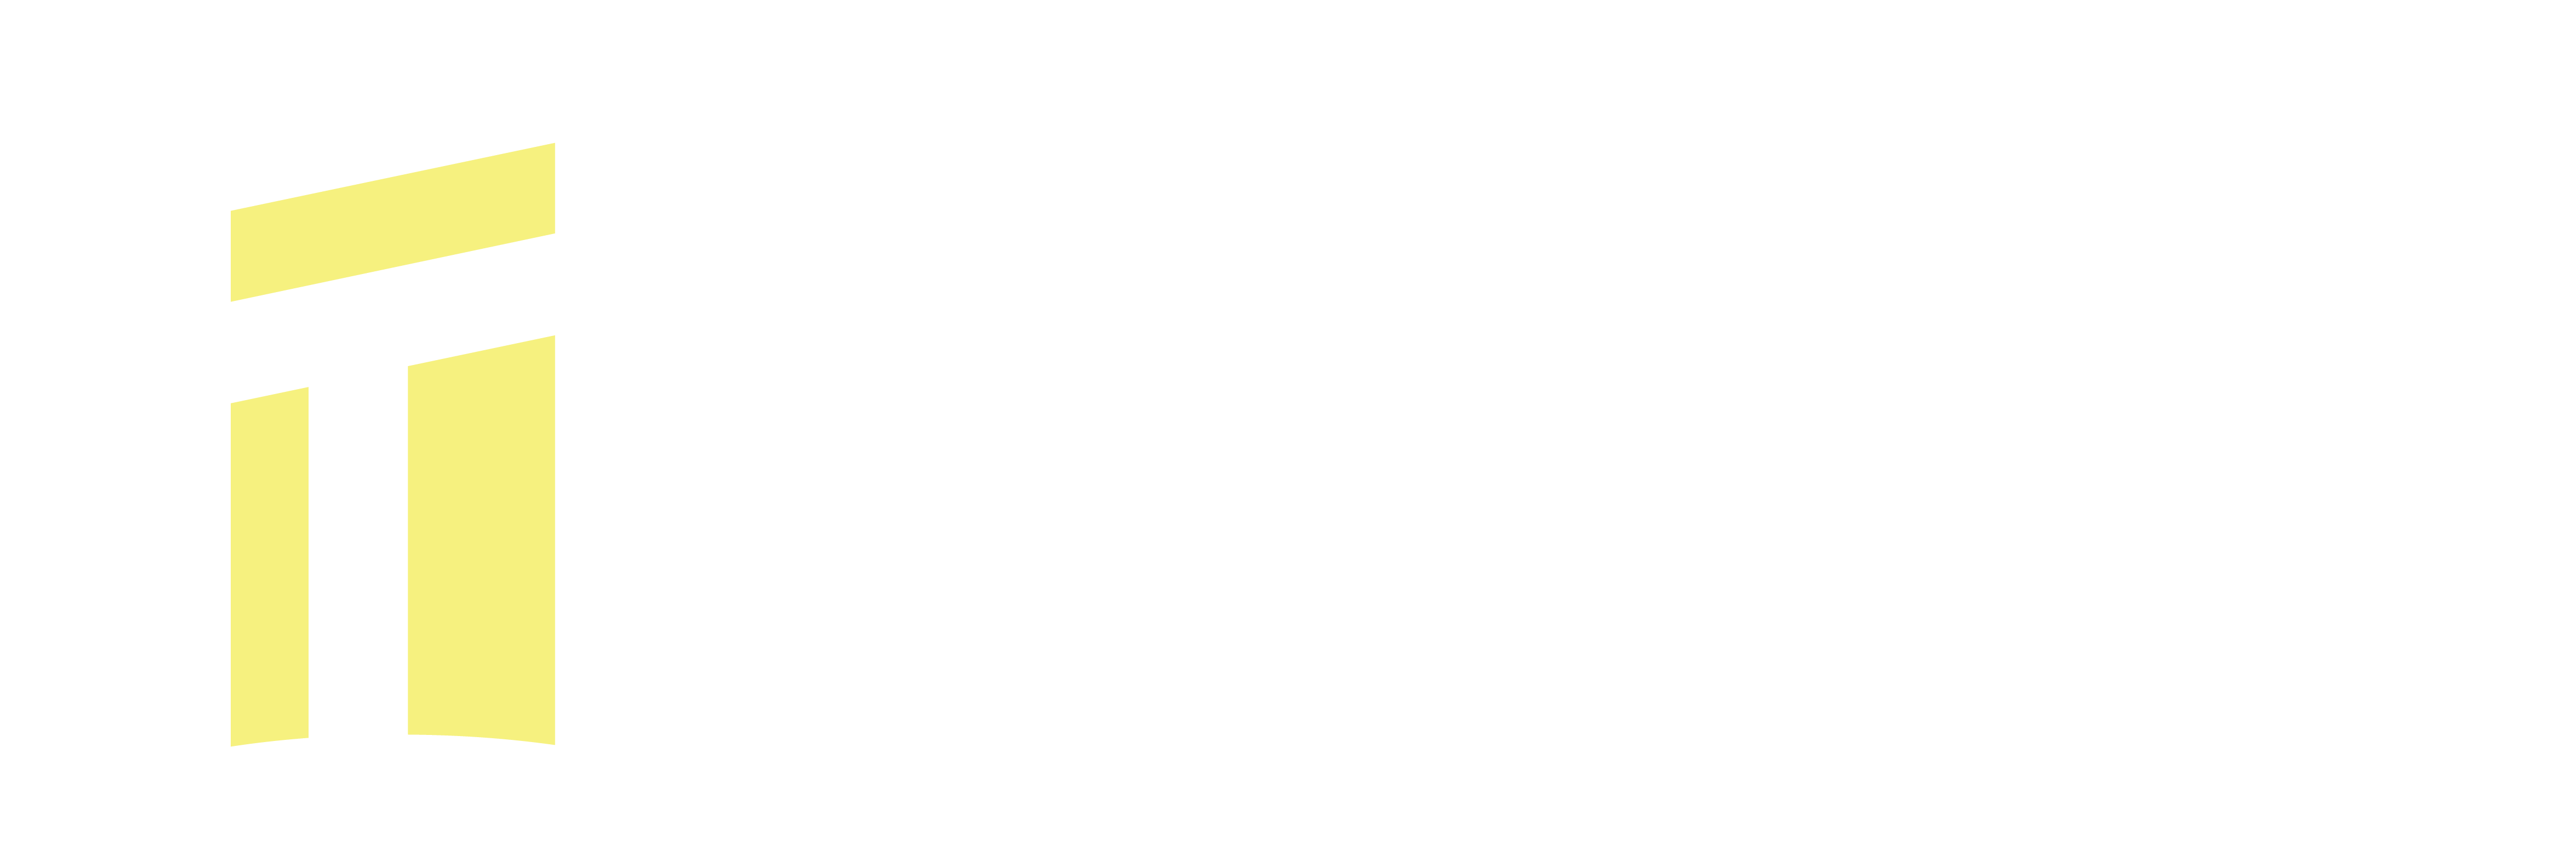 EuroLine Windows